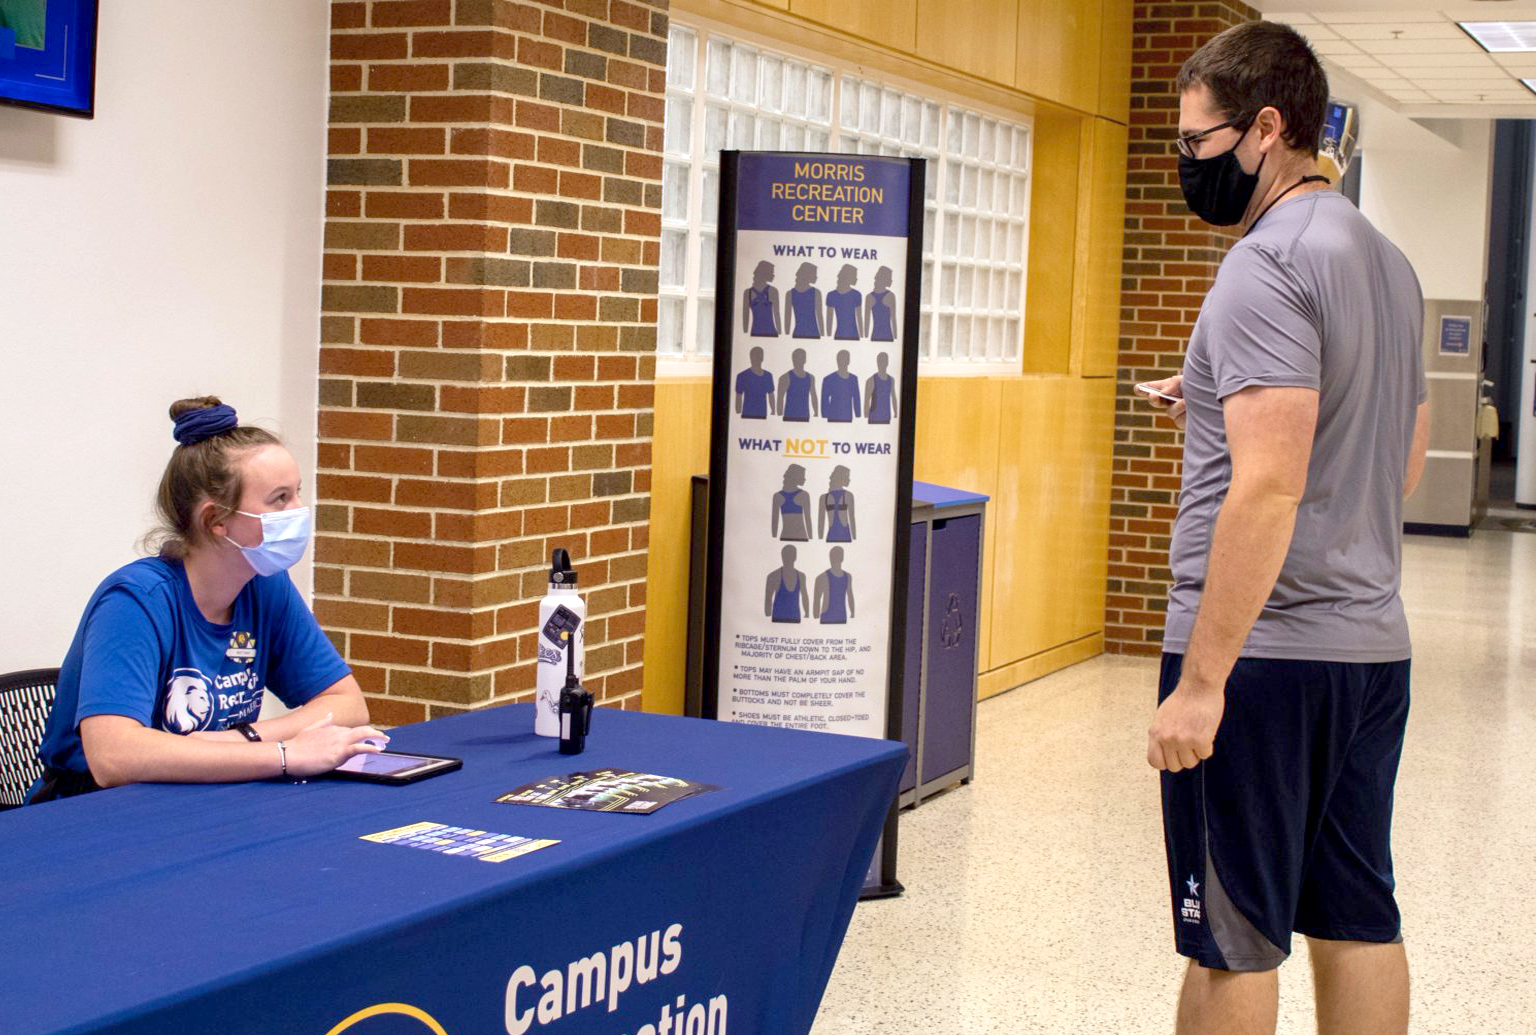 Campus Recreation worker checking in a member.